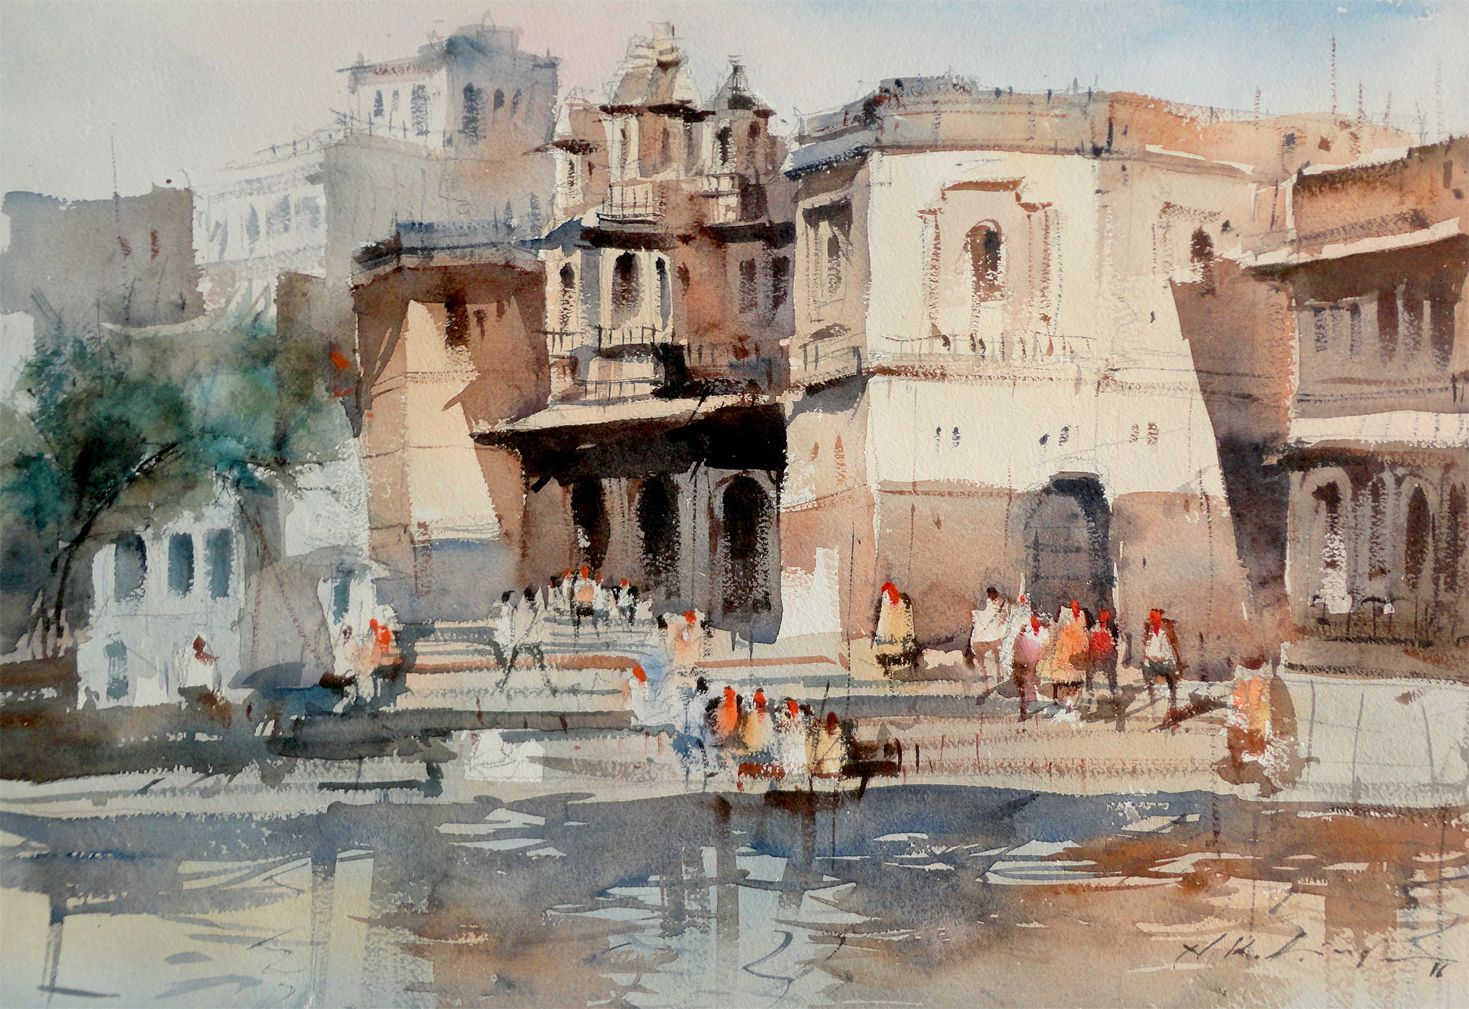 History of watercolor art - Watercolor Artists Artist Painting Watercolor Paintings Watercolour Udaipur Urban Landscape Online Art Cityscapes Lakes